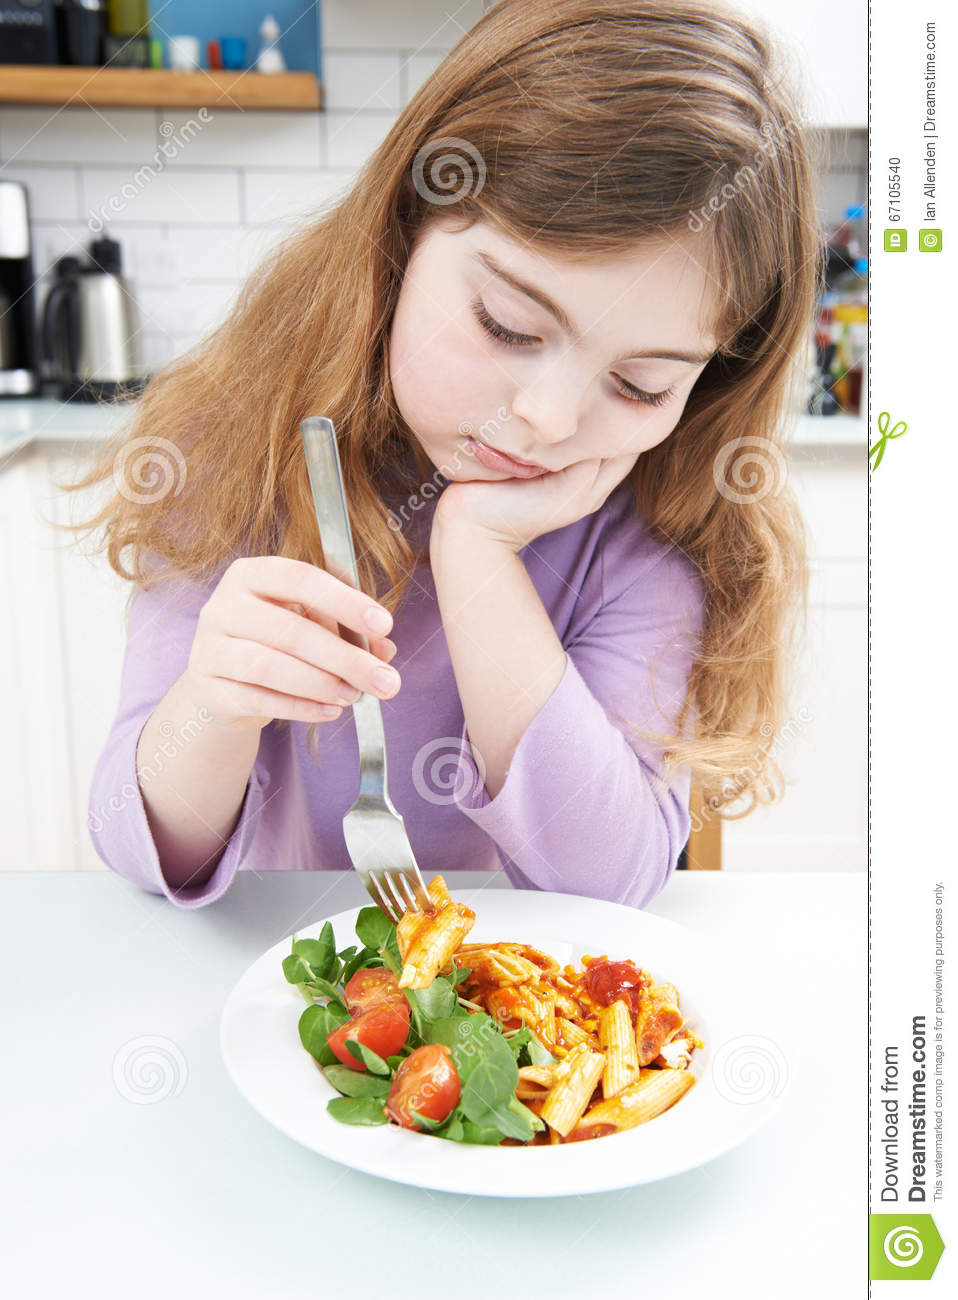 Fussy Girl With Healthy Meal At Home